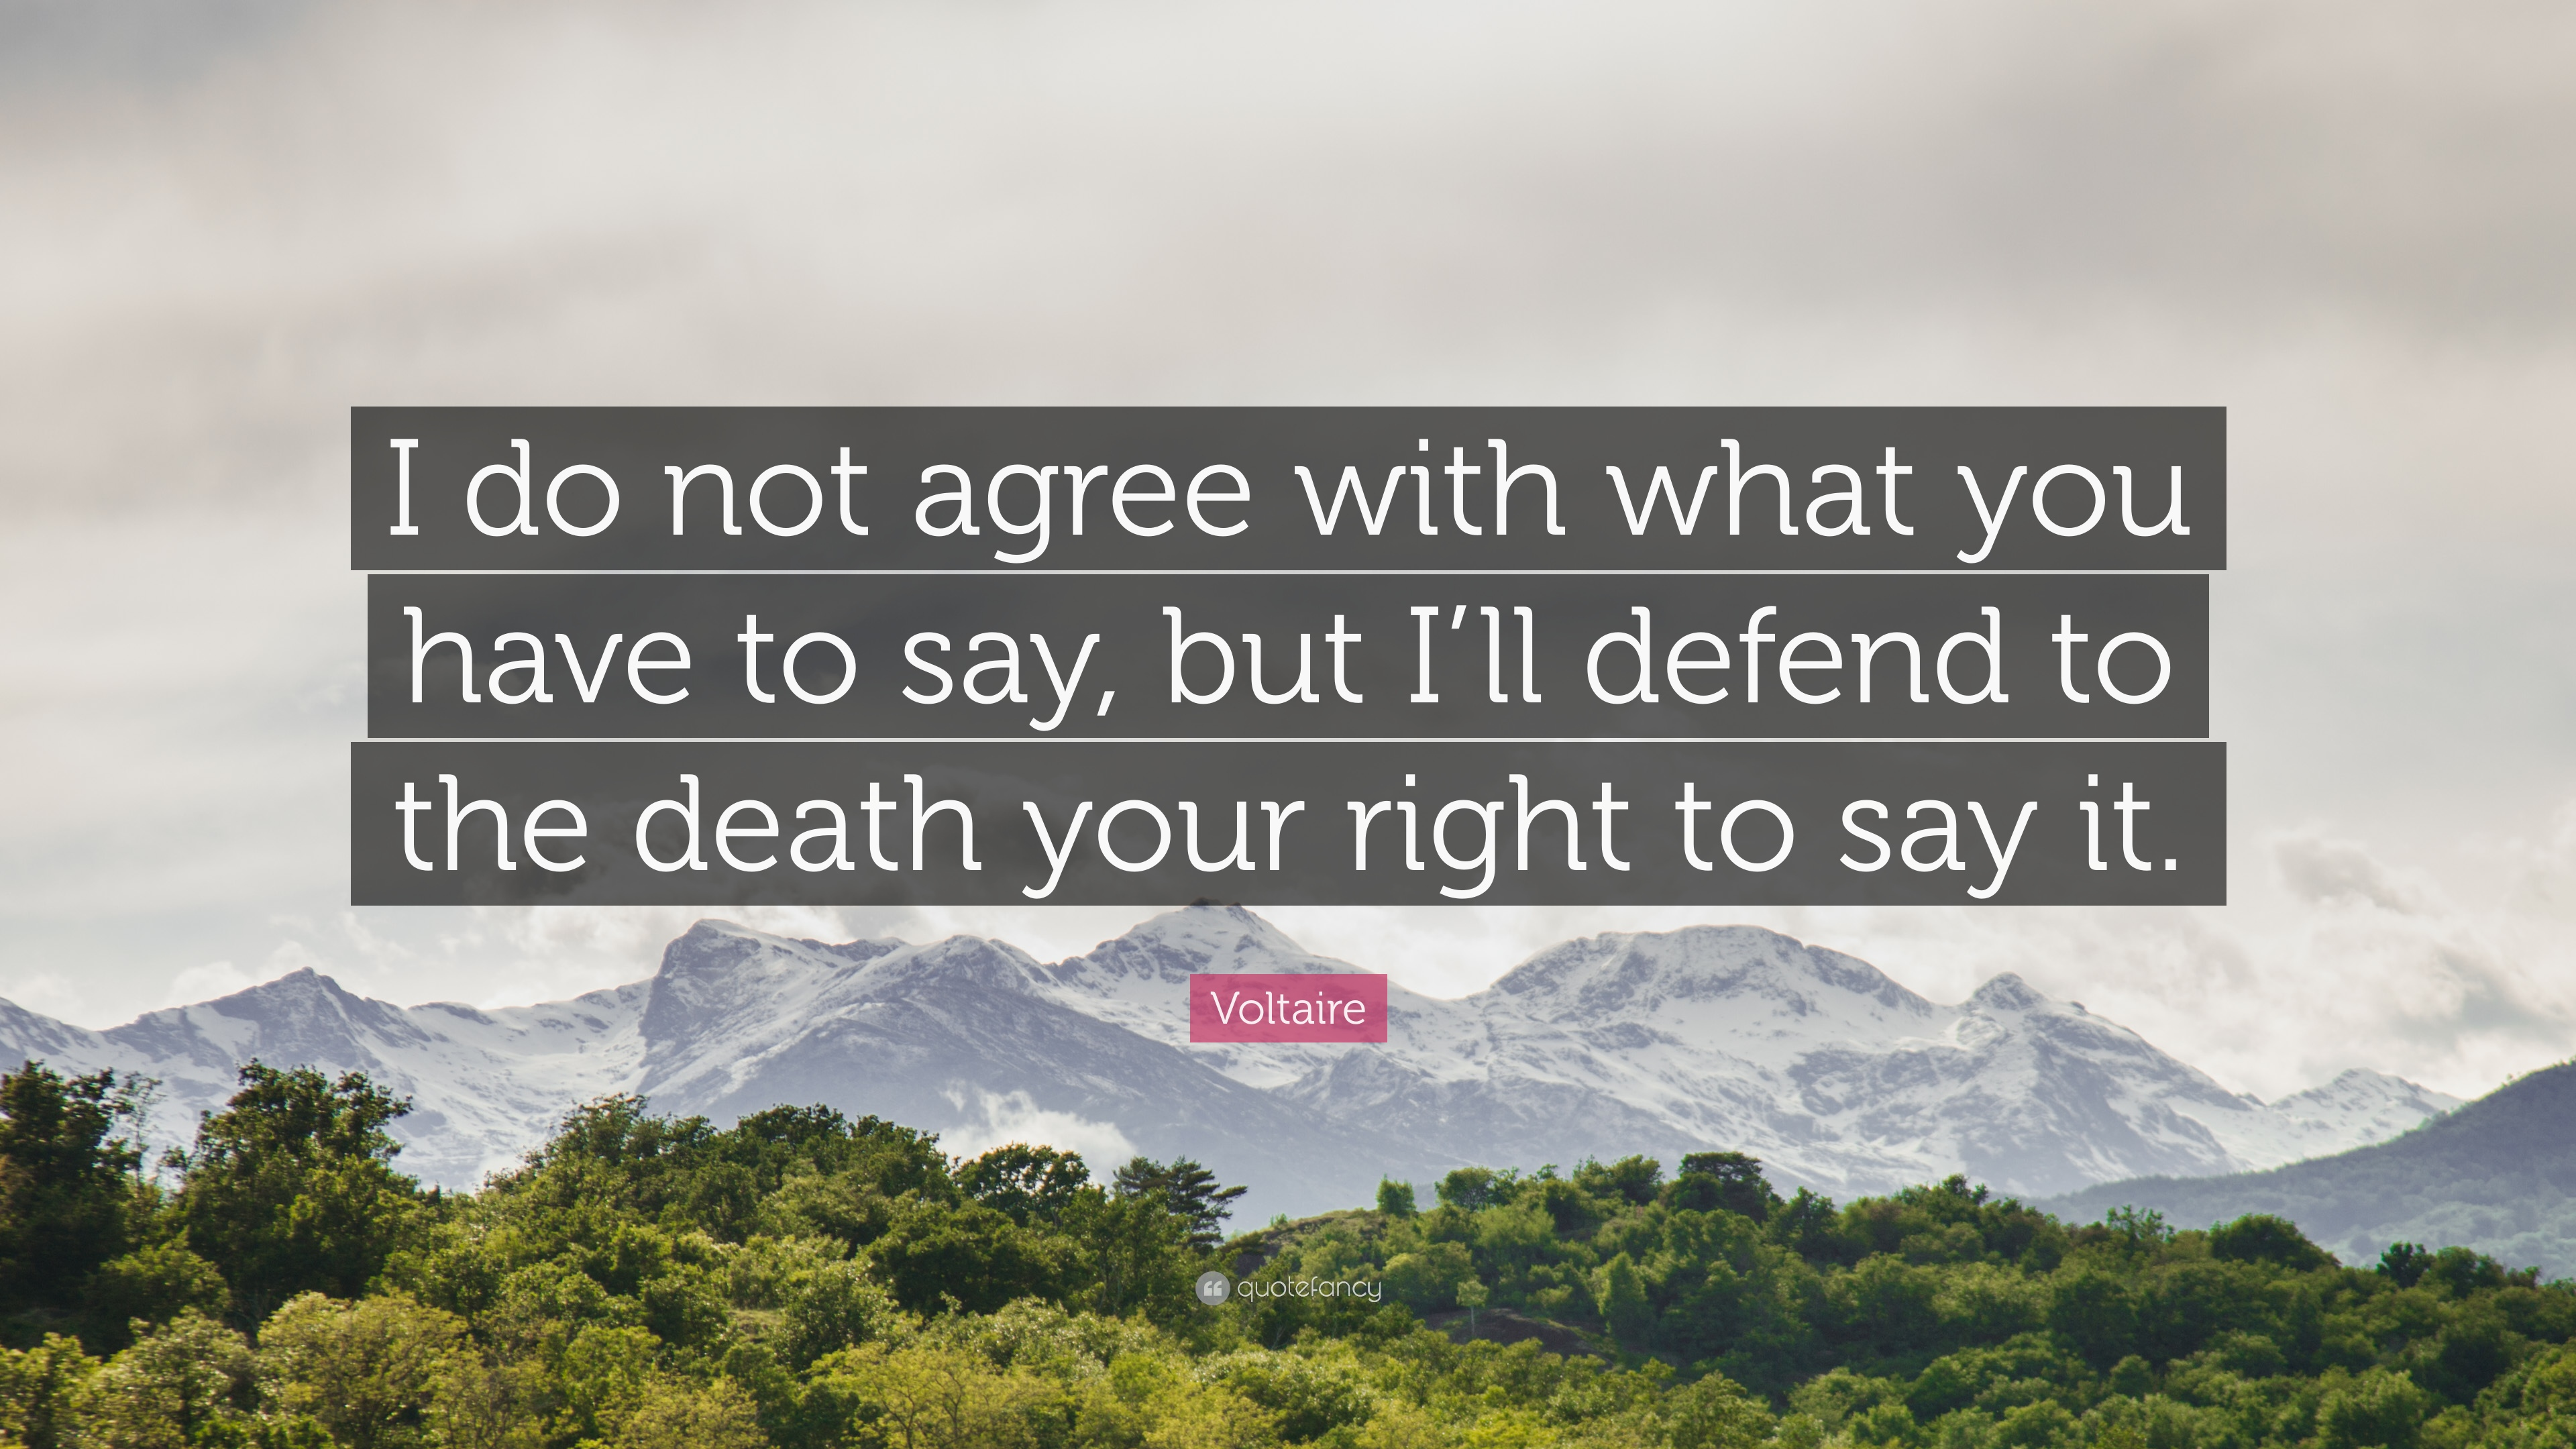 I may not agree with what you say quote